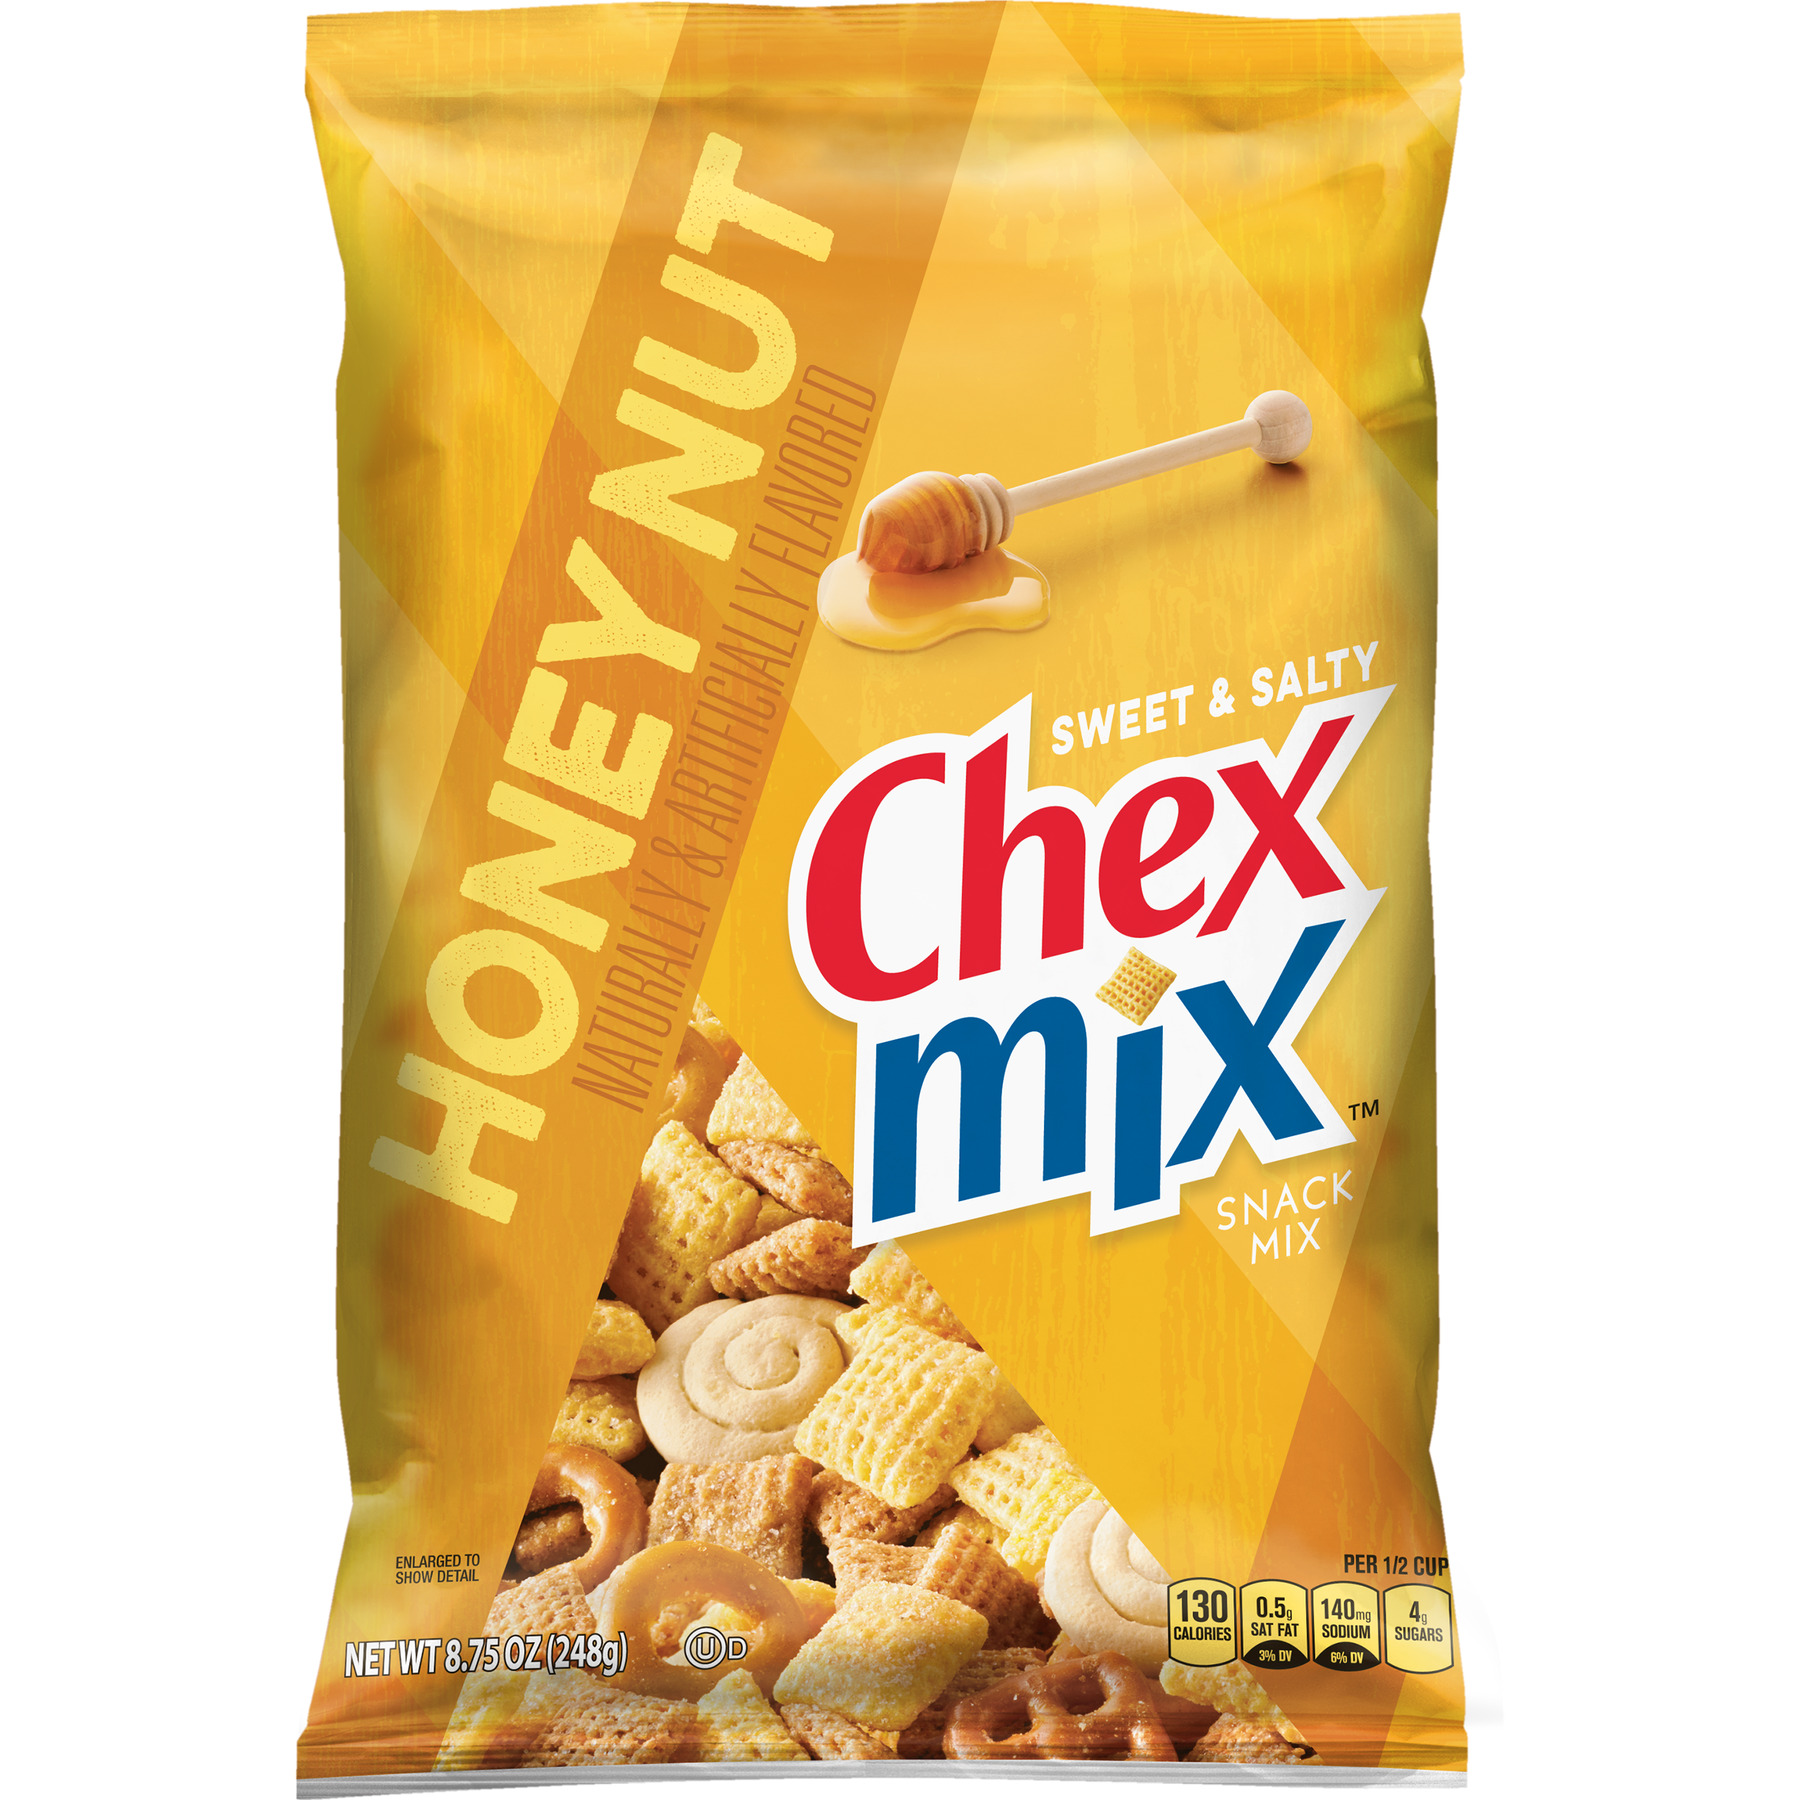 Chex Mix Sweet and Salty Honey Nut Snack Mix, 8.75 oz